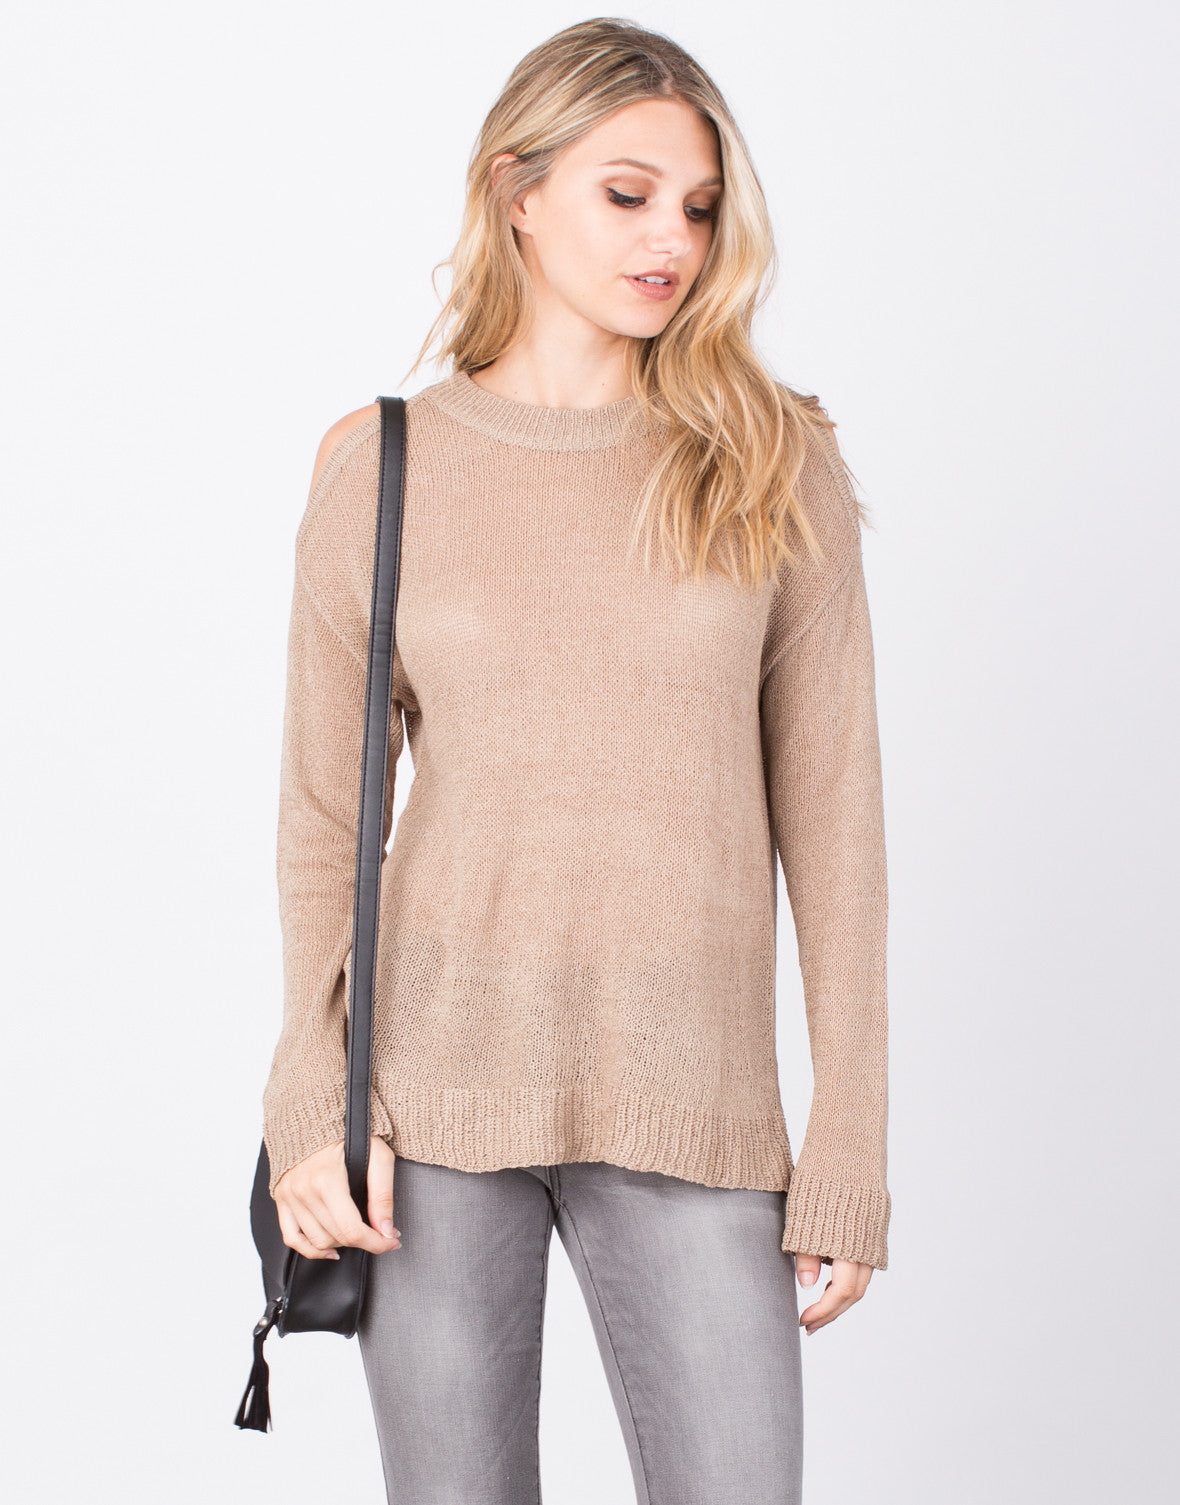 Front View of Cold Shoulder Sweater Top